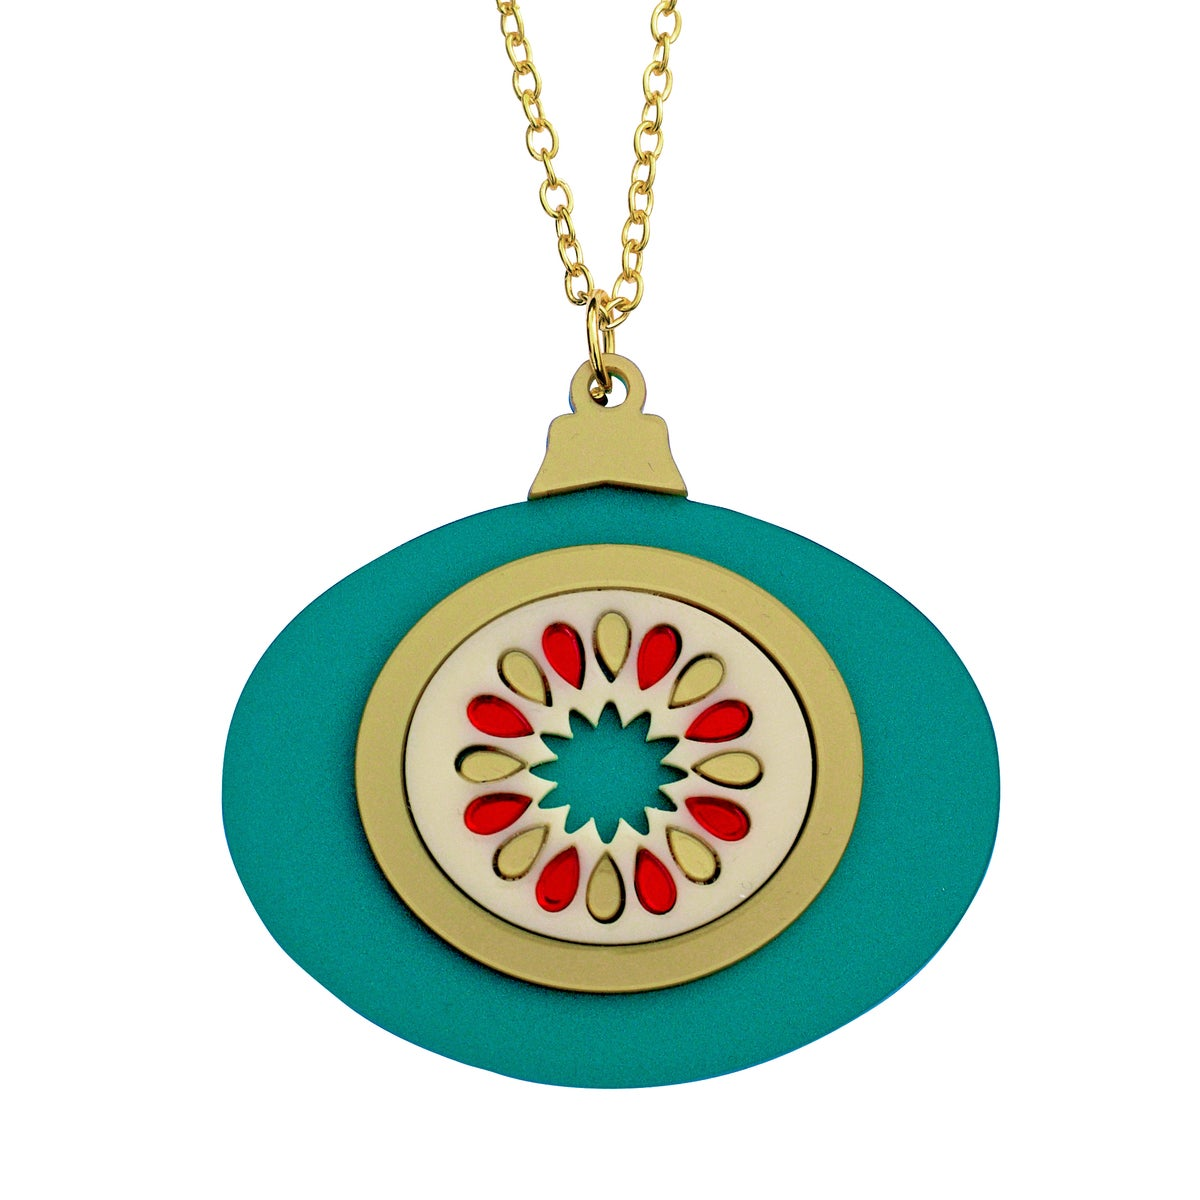 Image of Mid Century Modern Gold and Green Bauble Pendant Necklace